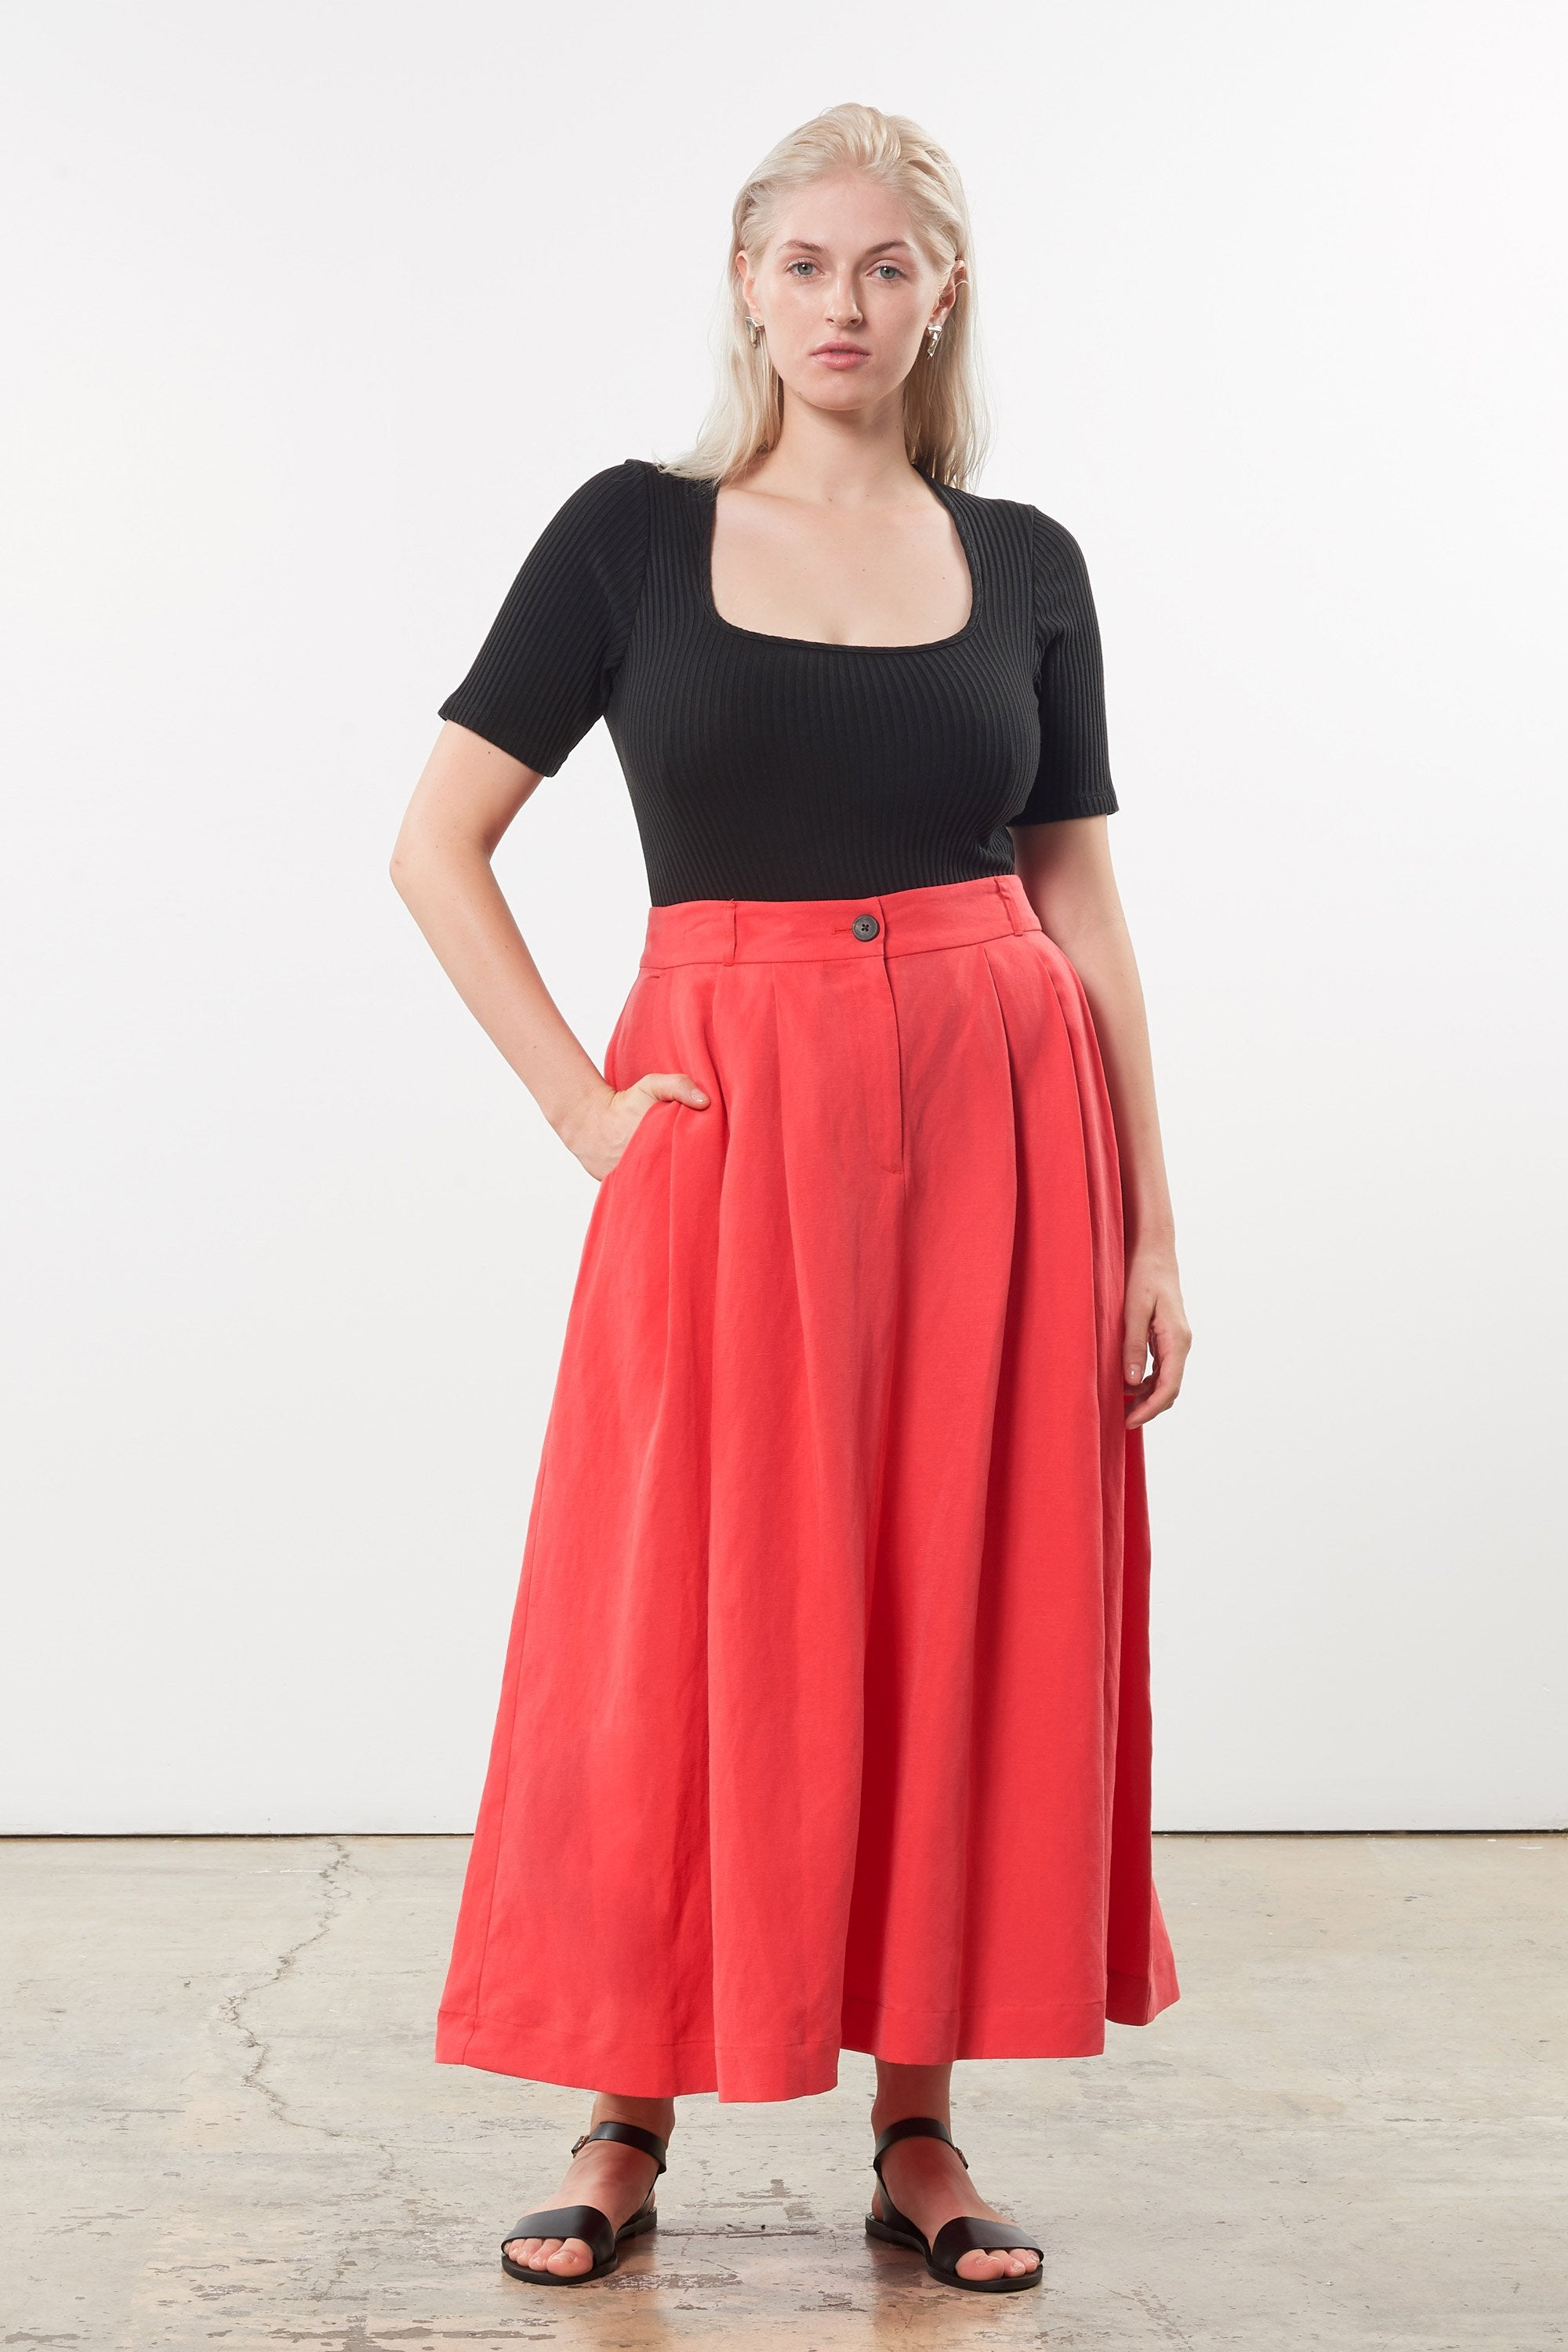 Mara Hoffman Extended Black Arete Bodysuit in Tencel and Refibra (front with Tulay skirt)